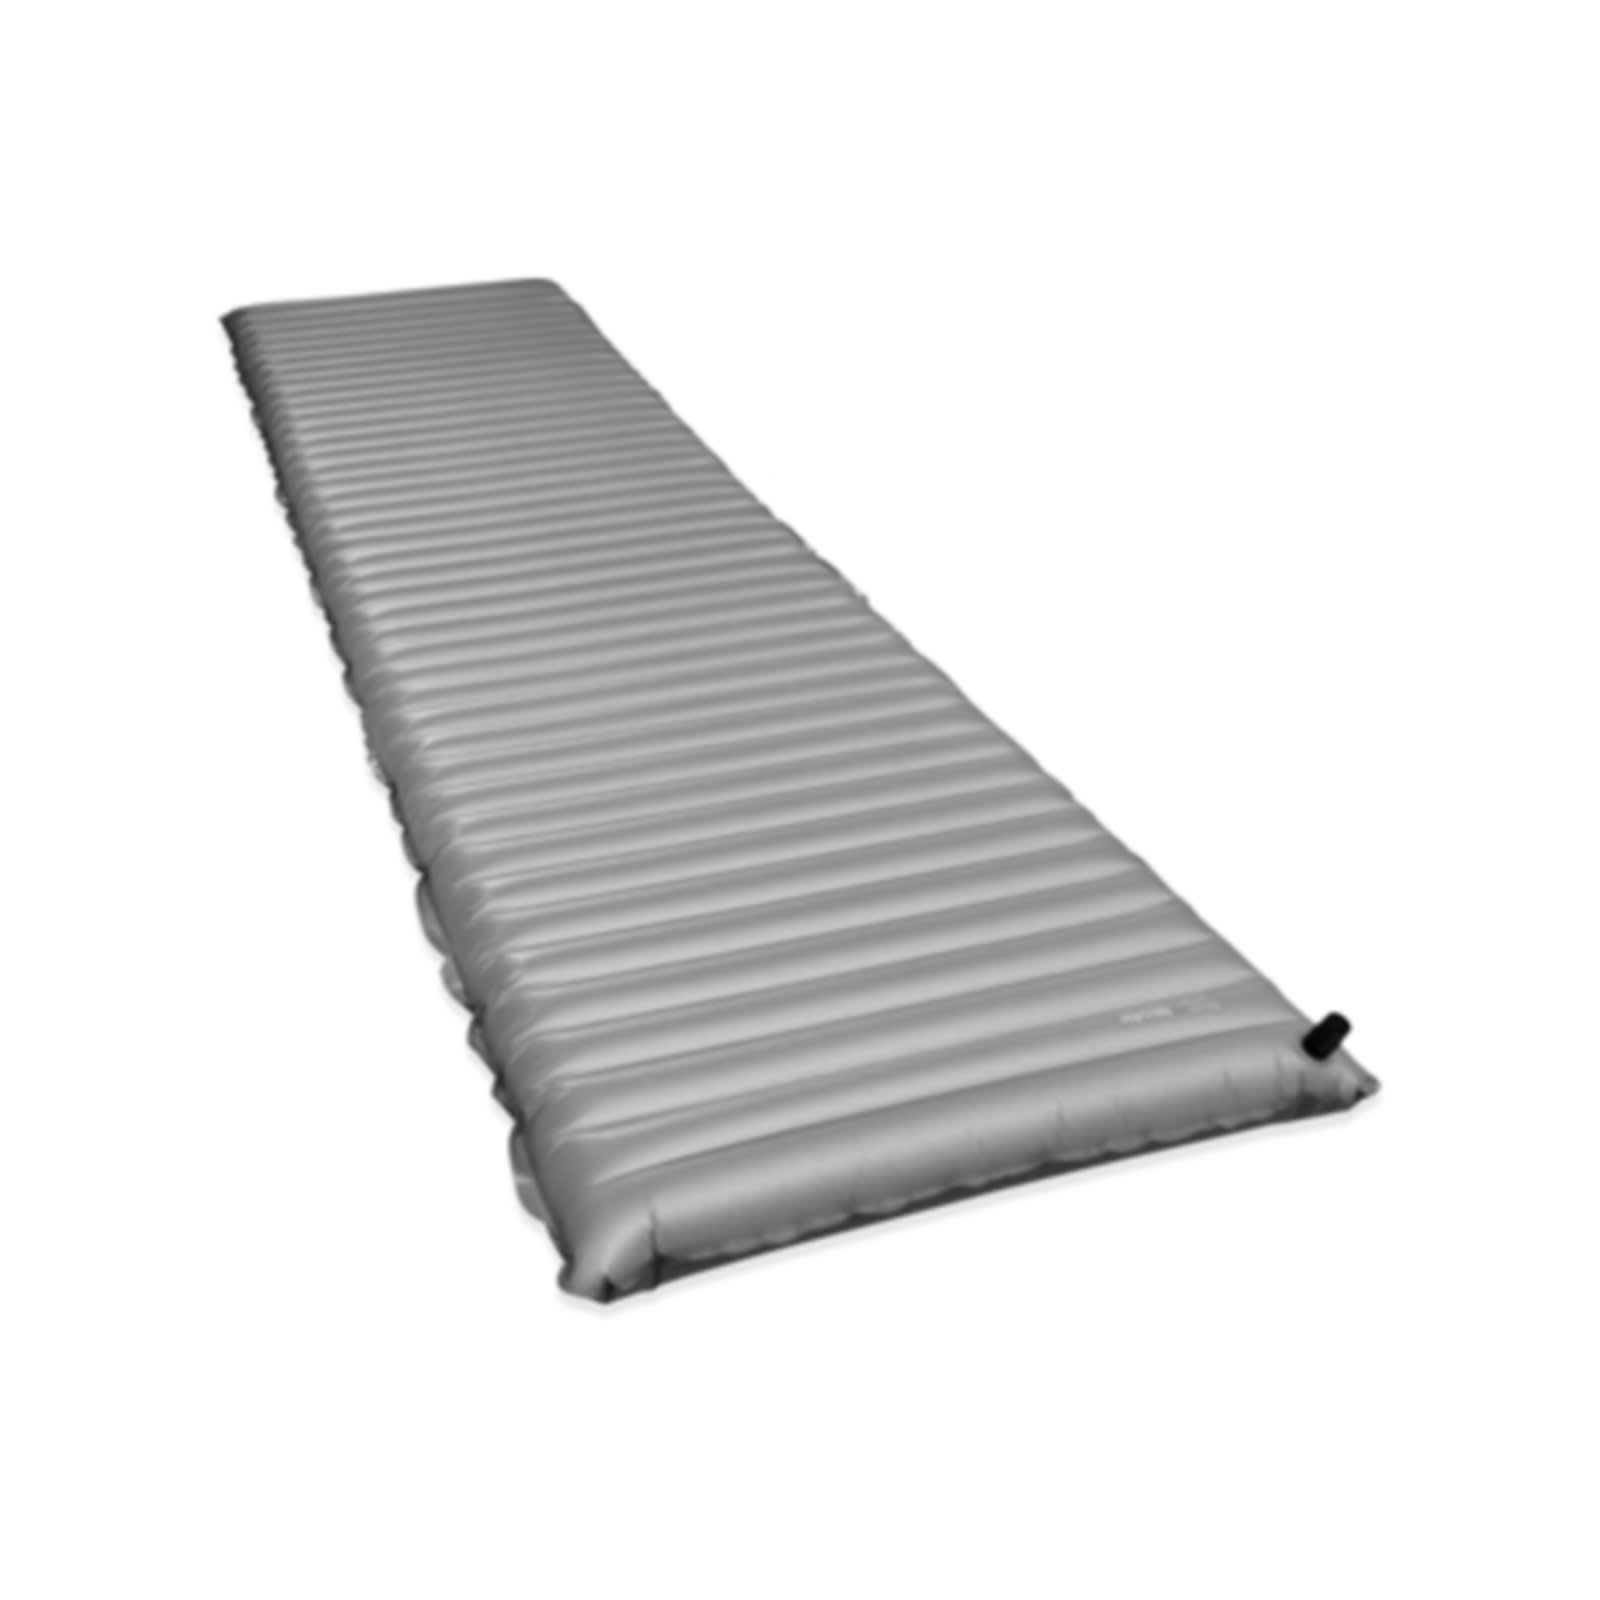 Neoair Xtherm Max Reg , Thermarest